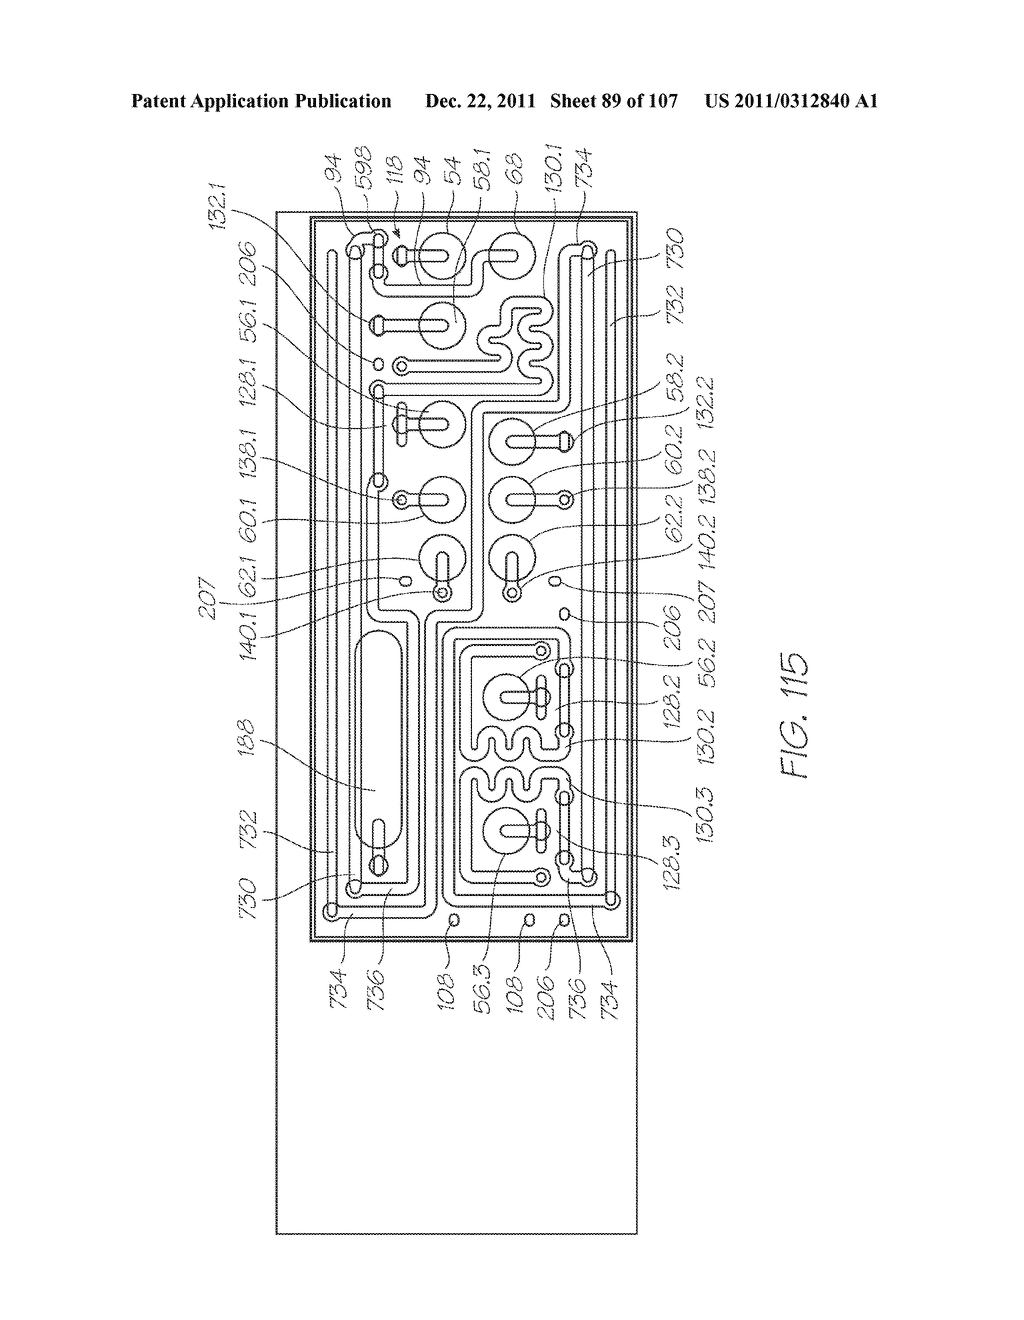 MICROFLUIDIC DEVICE WITH SAMPLE INLET, ELECTROCHEMILUMINESCENT PROBES AND     INTEGRATED PHOTOSENSOR FOR DETECTION OF TARGET SEQUENCES - diagram, schematic, and image 90